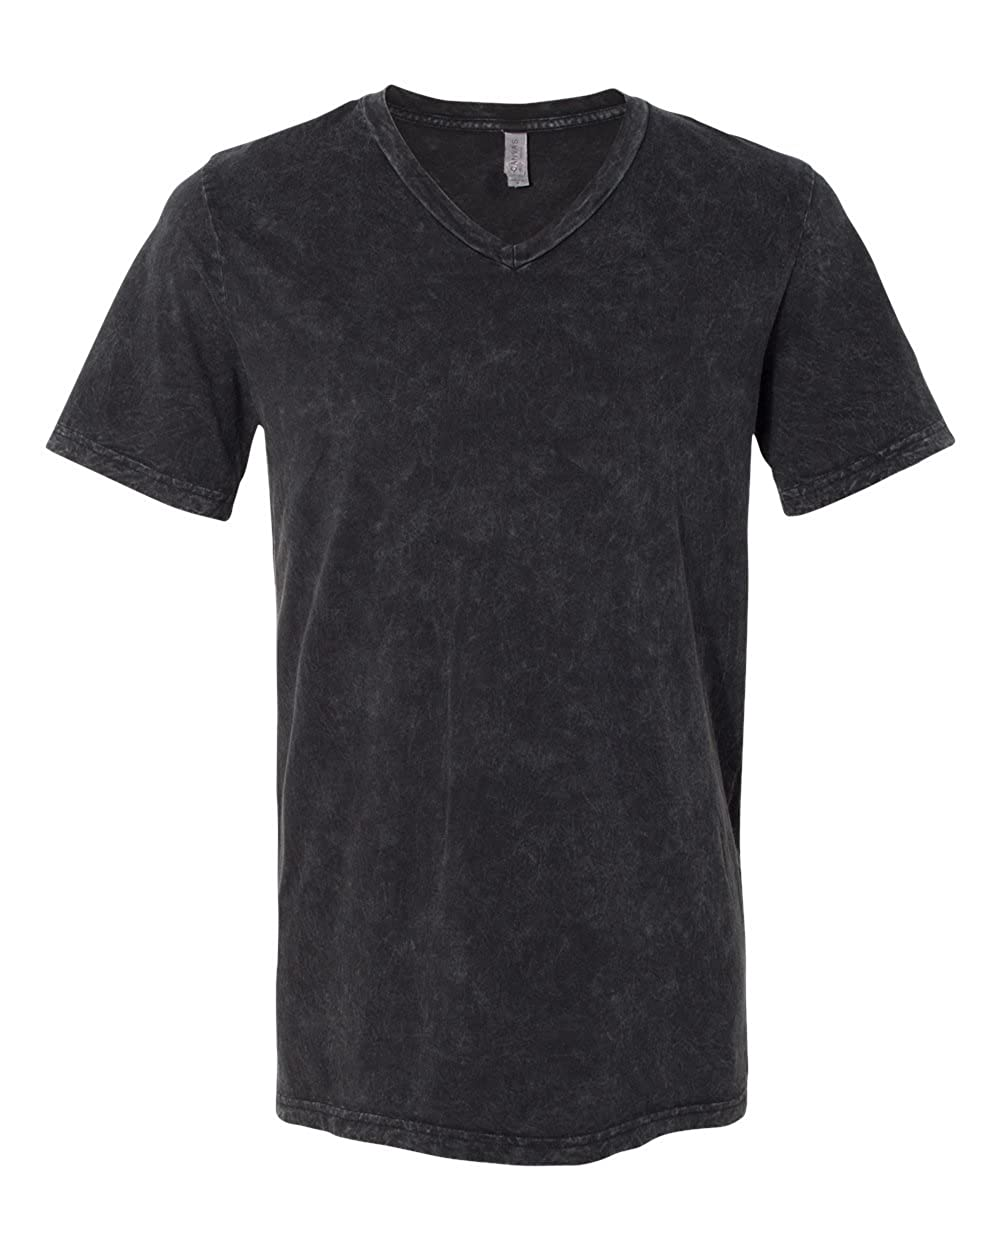 Bella Canvas 3005U Unisex Adult Made in The USA Jersey Short-Sleeve V-Neck Tee